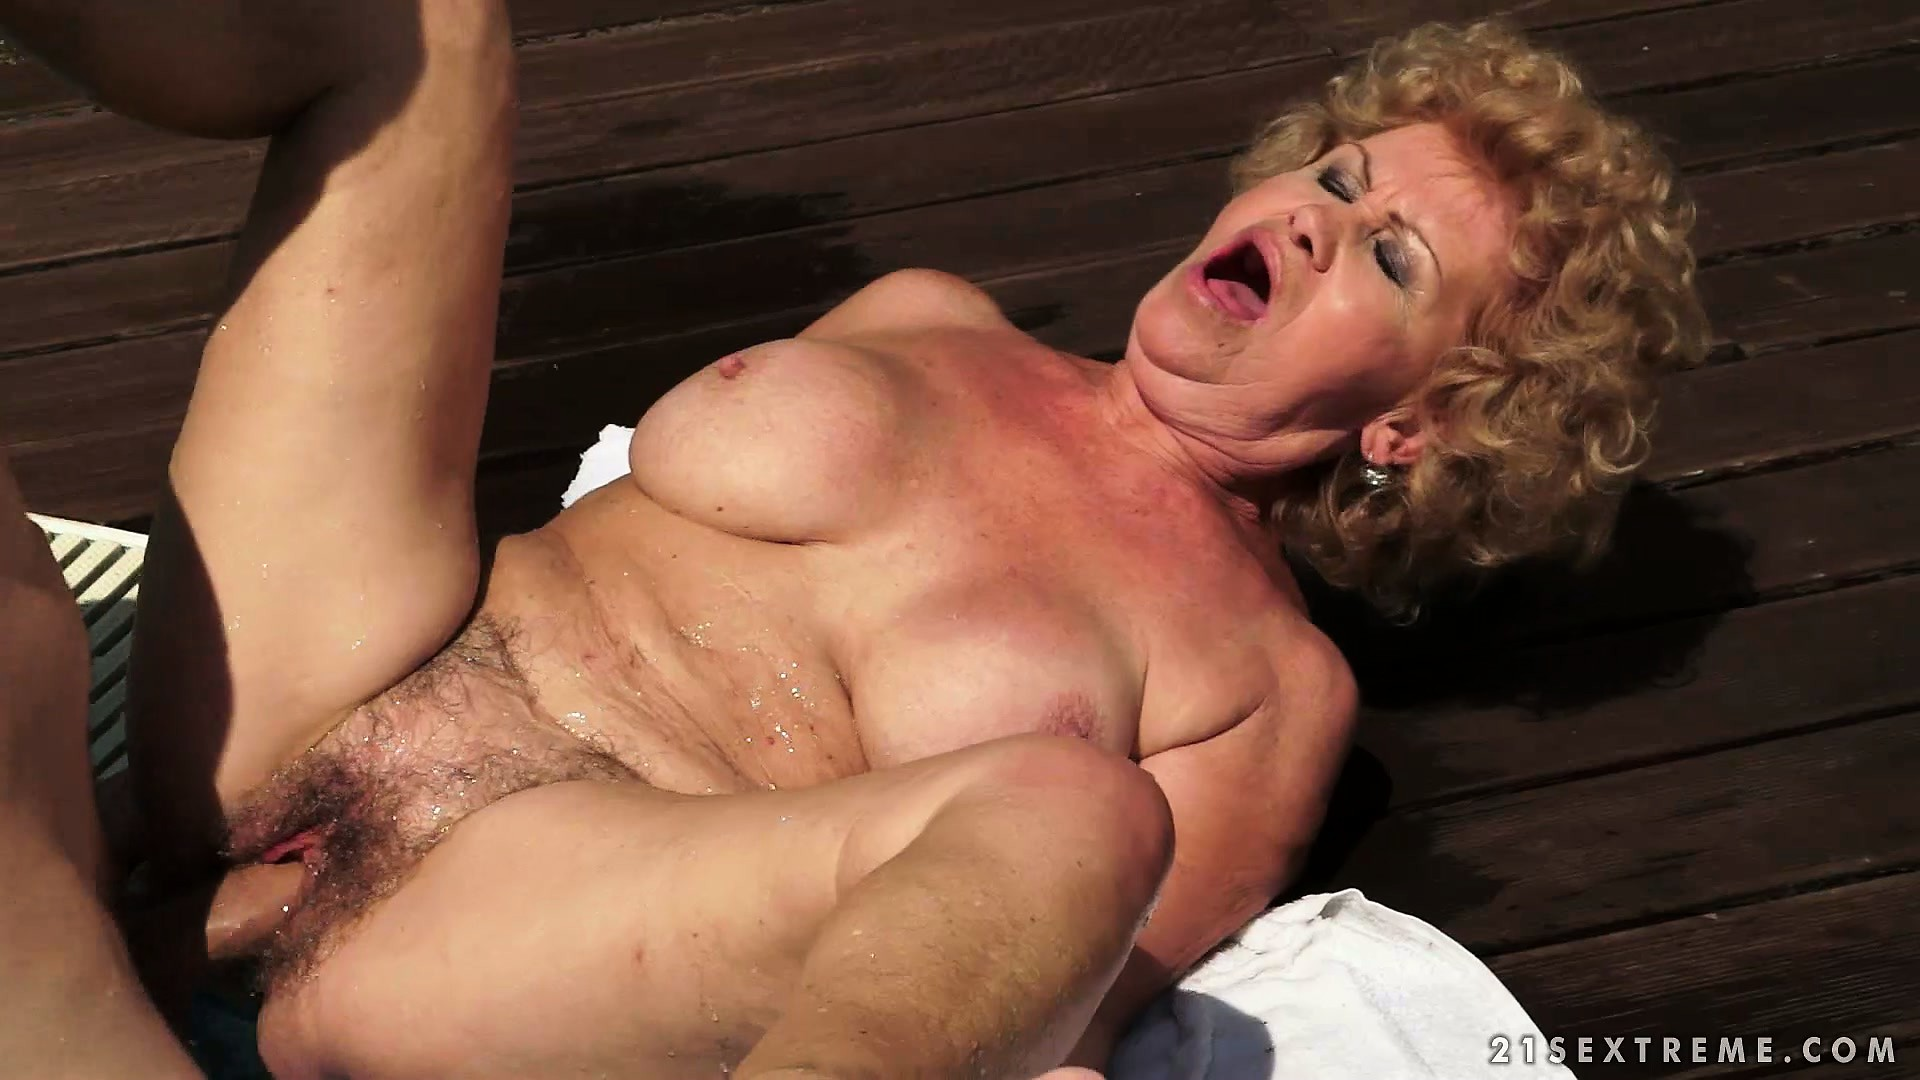 Porno Video of Granny Remembers The Old Days As This Young Stud Bangs Her Hard